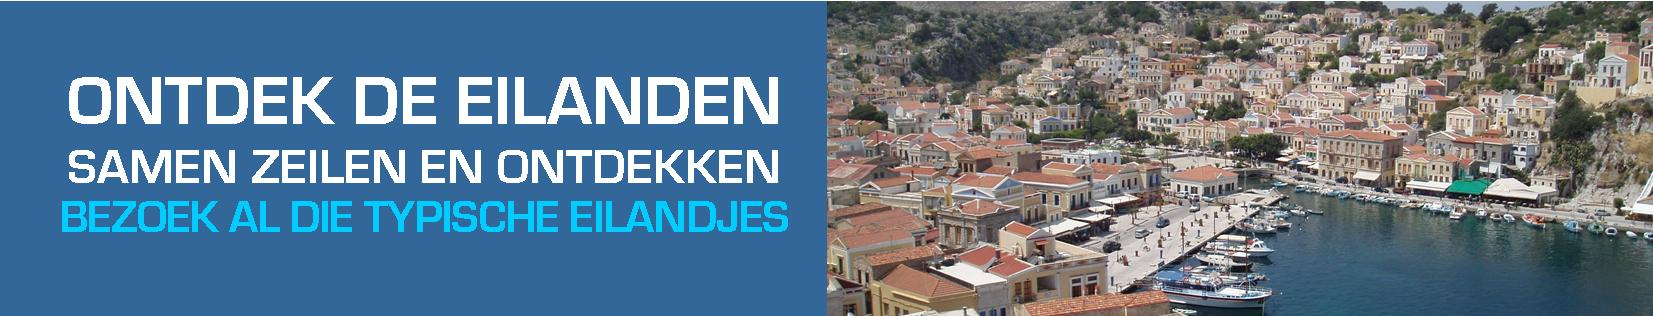 ontdek de eilanden |  Rhodes - Sail in Greece | www.sail-in-greece.net